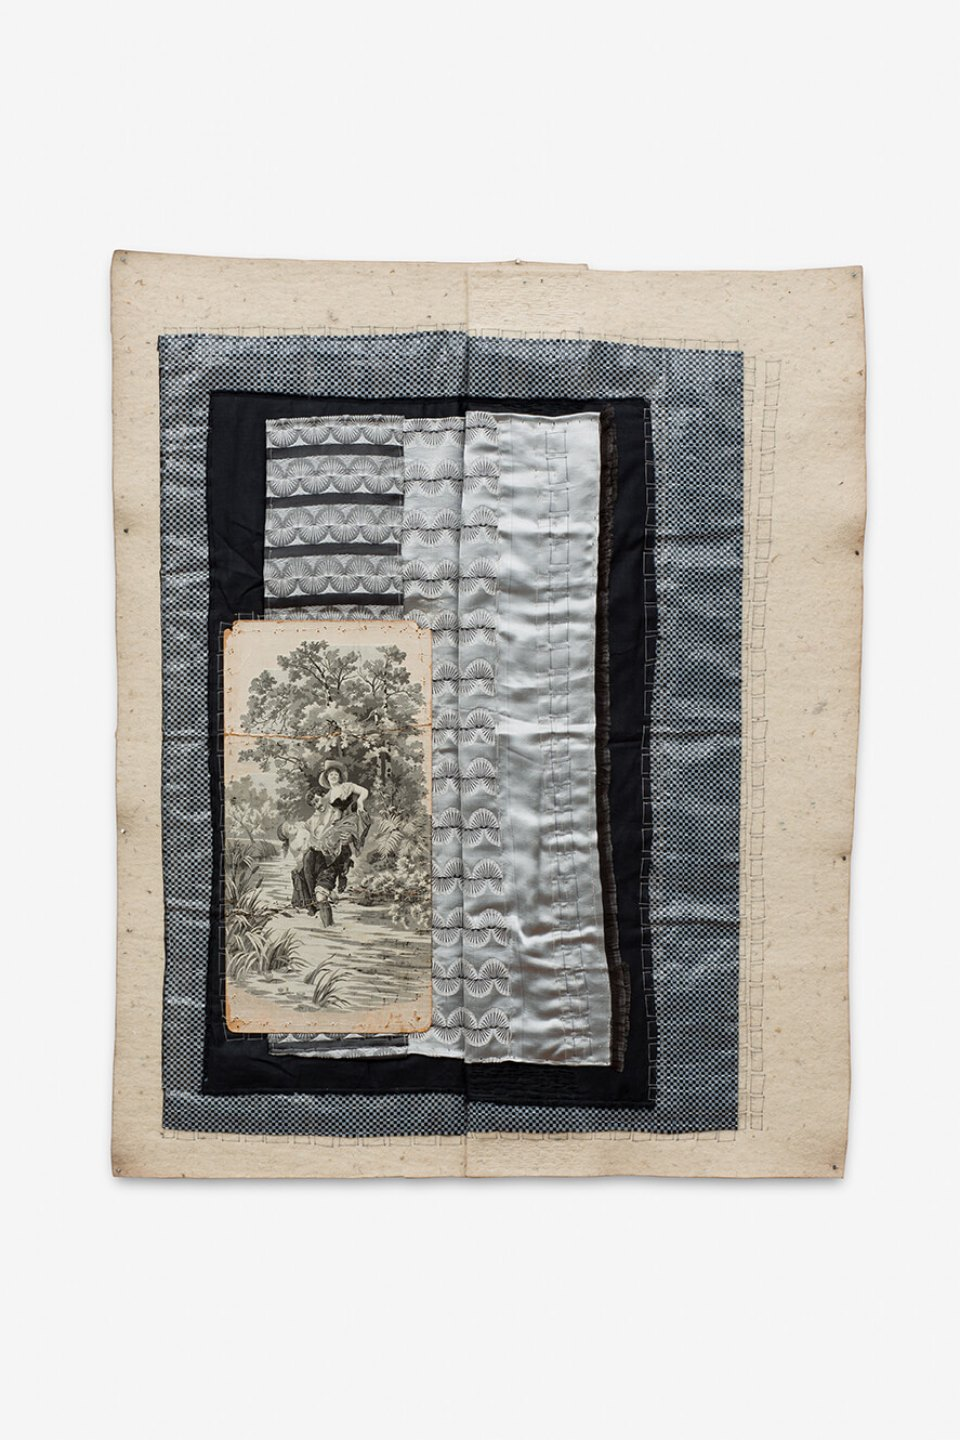 f. marquespeteado, <em>São Cristovão à Paisana,</em> 2013, machine and hand embroidered textile collage which includes a jacquard, dyed wools and different PVCs, 79×64 cm - Mendes Wood DM